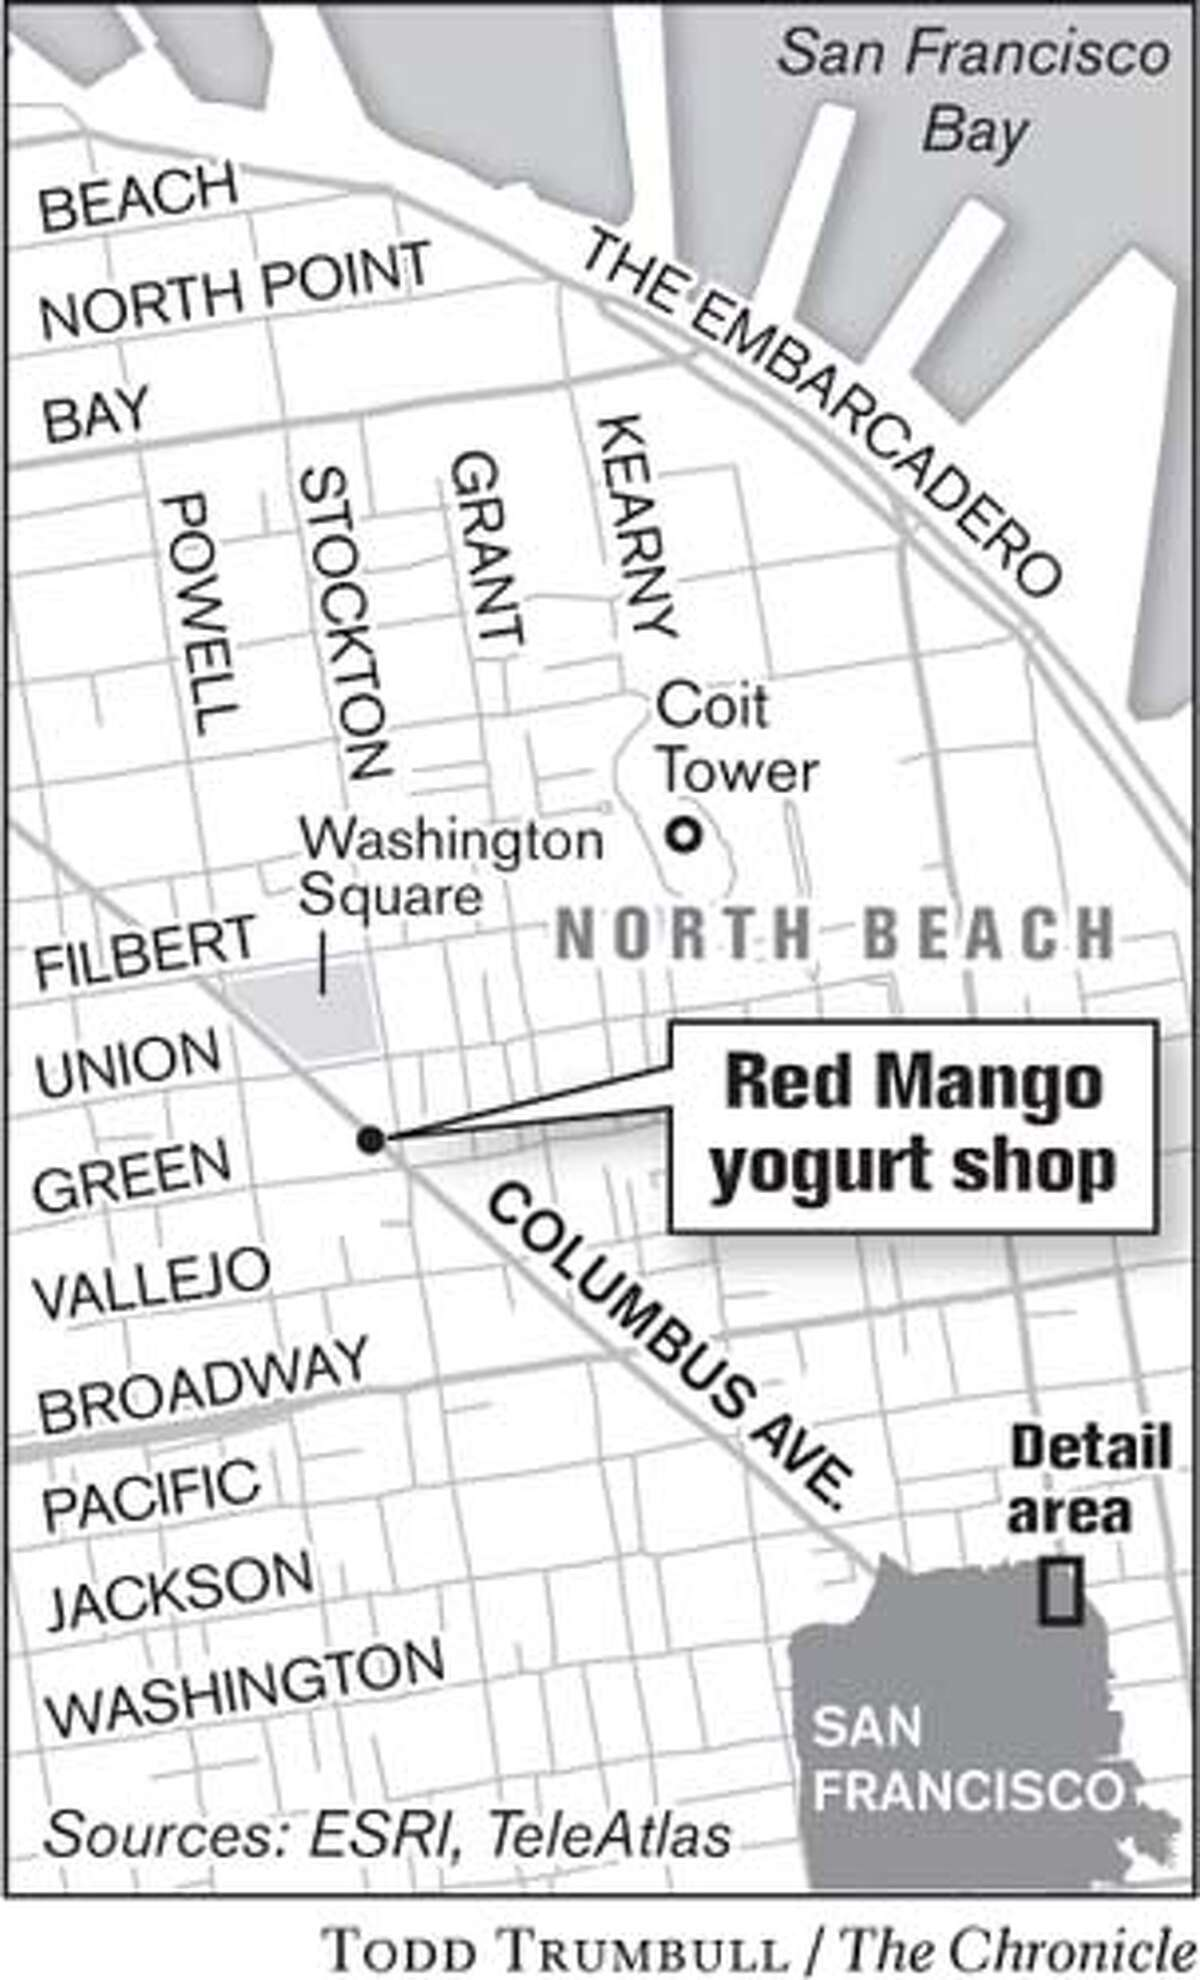 Red Mango Yogurt Shop. Chronicle graphic by Todd Trumbull